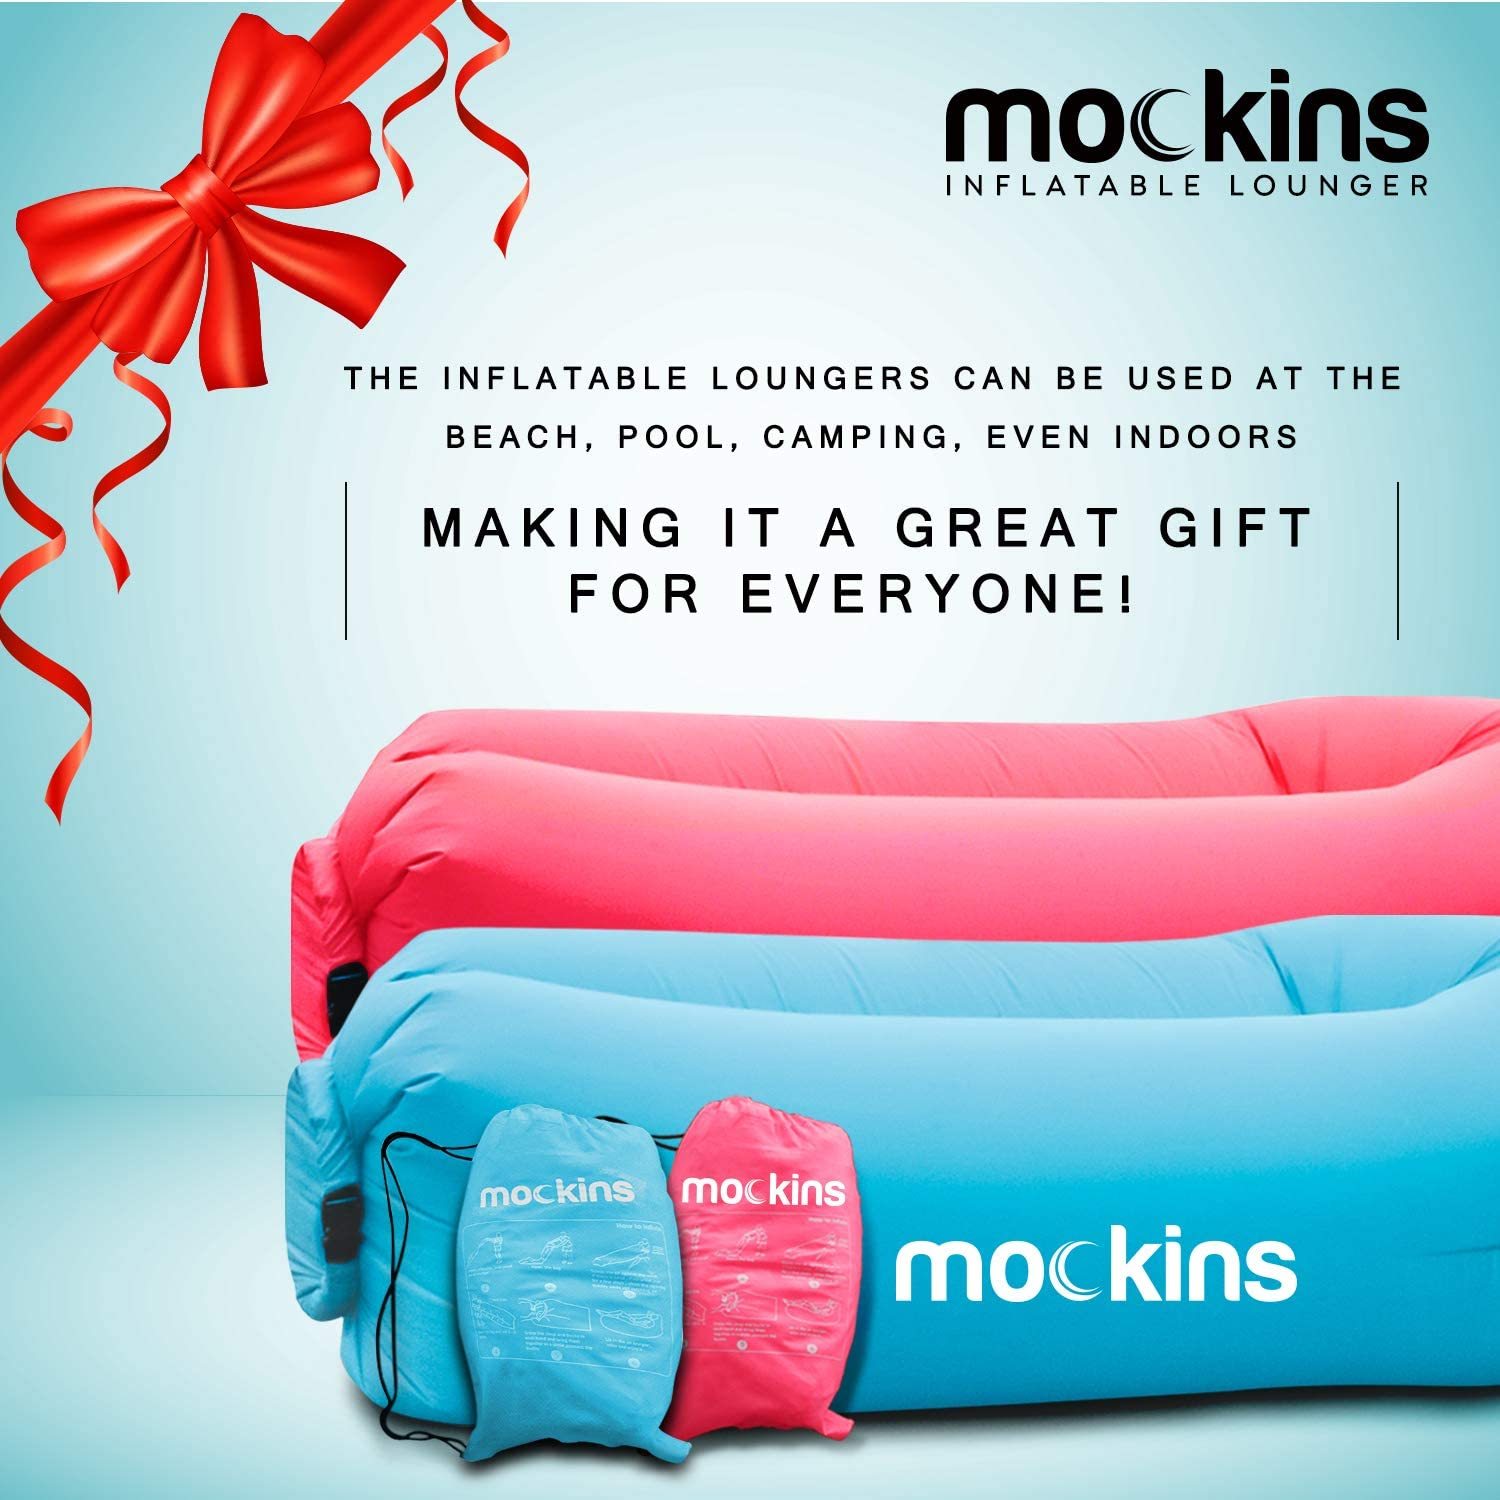 Mockins Portable Compact Inflatable Lounger, Travel Bag Pouch, 2 Pack - Blue/Pink (MMINF2PBLPNK32)